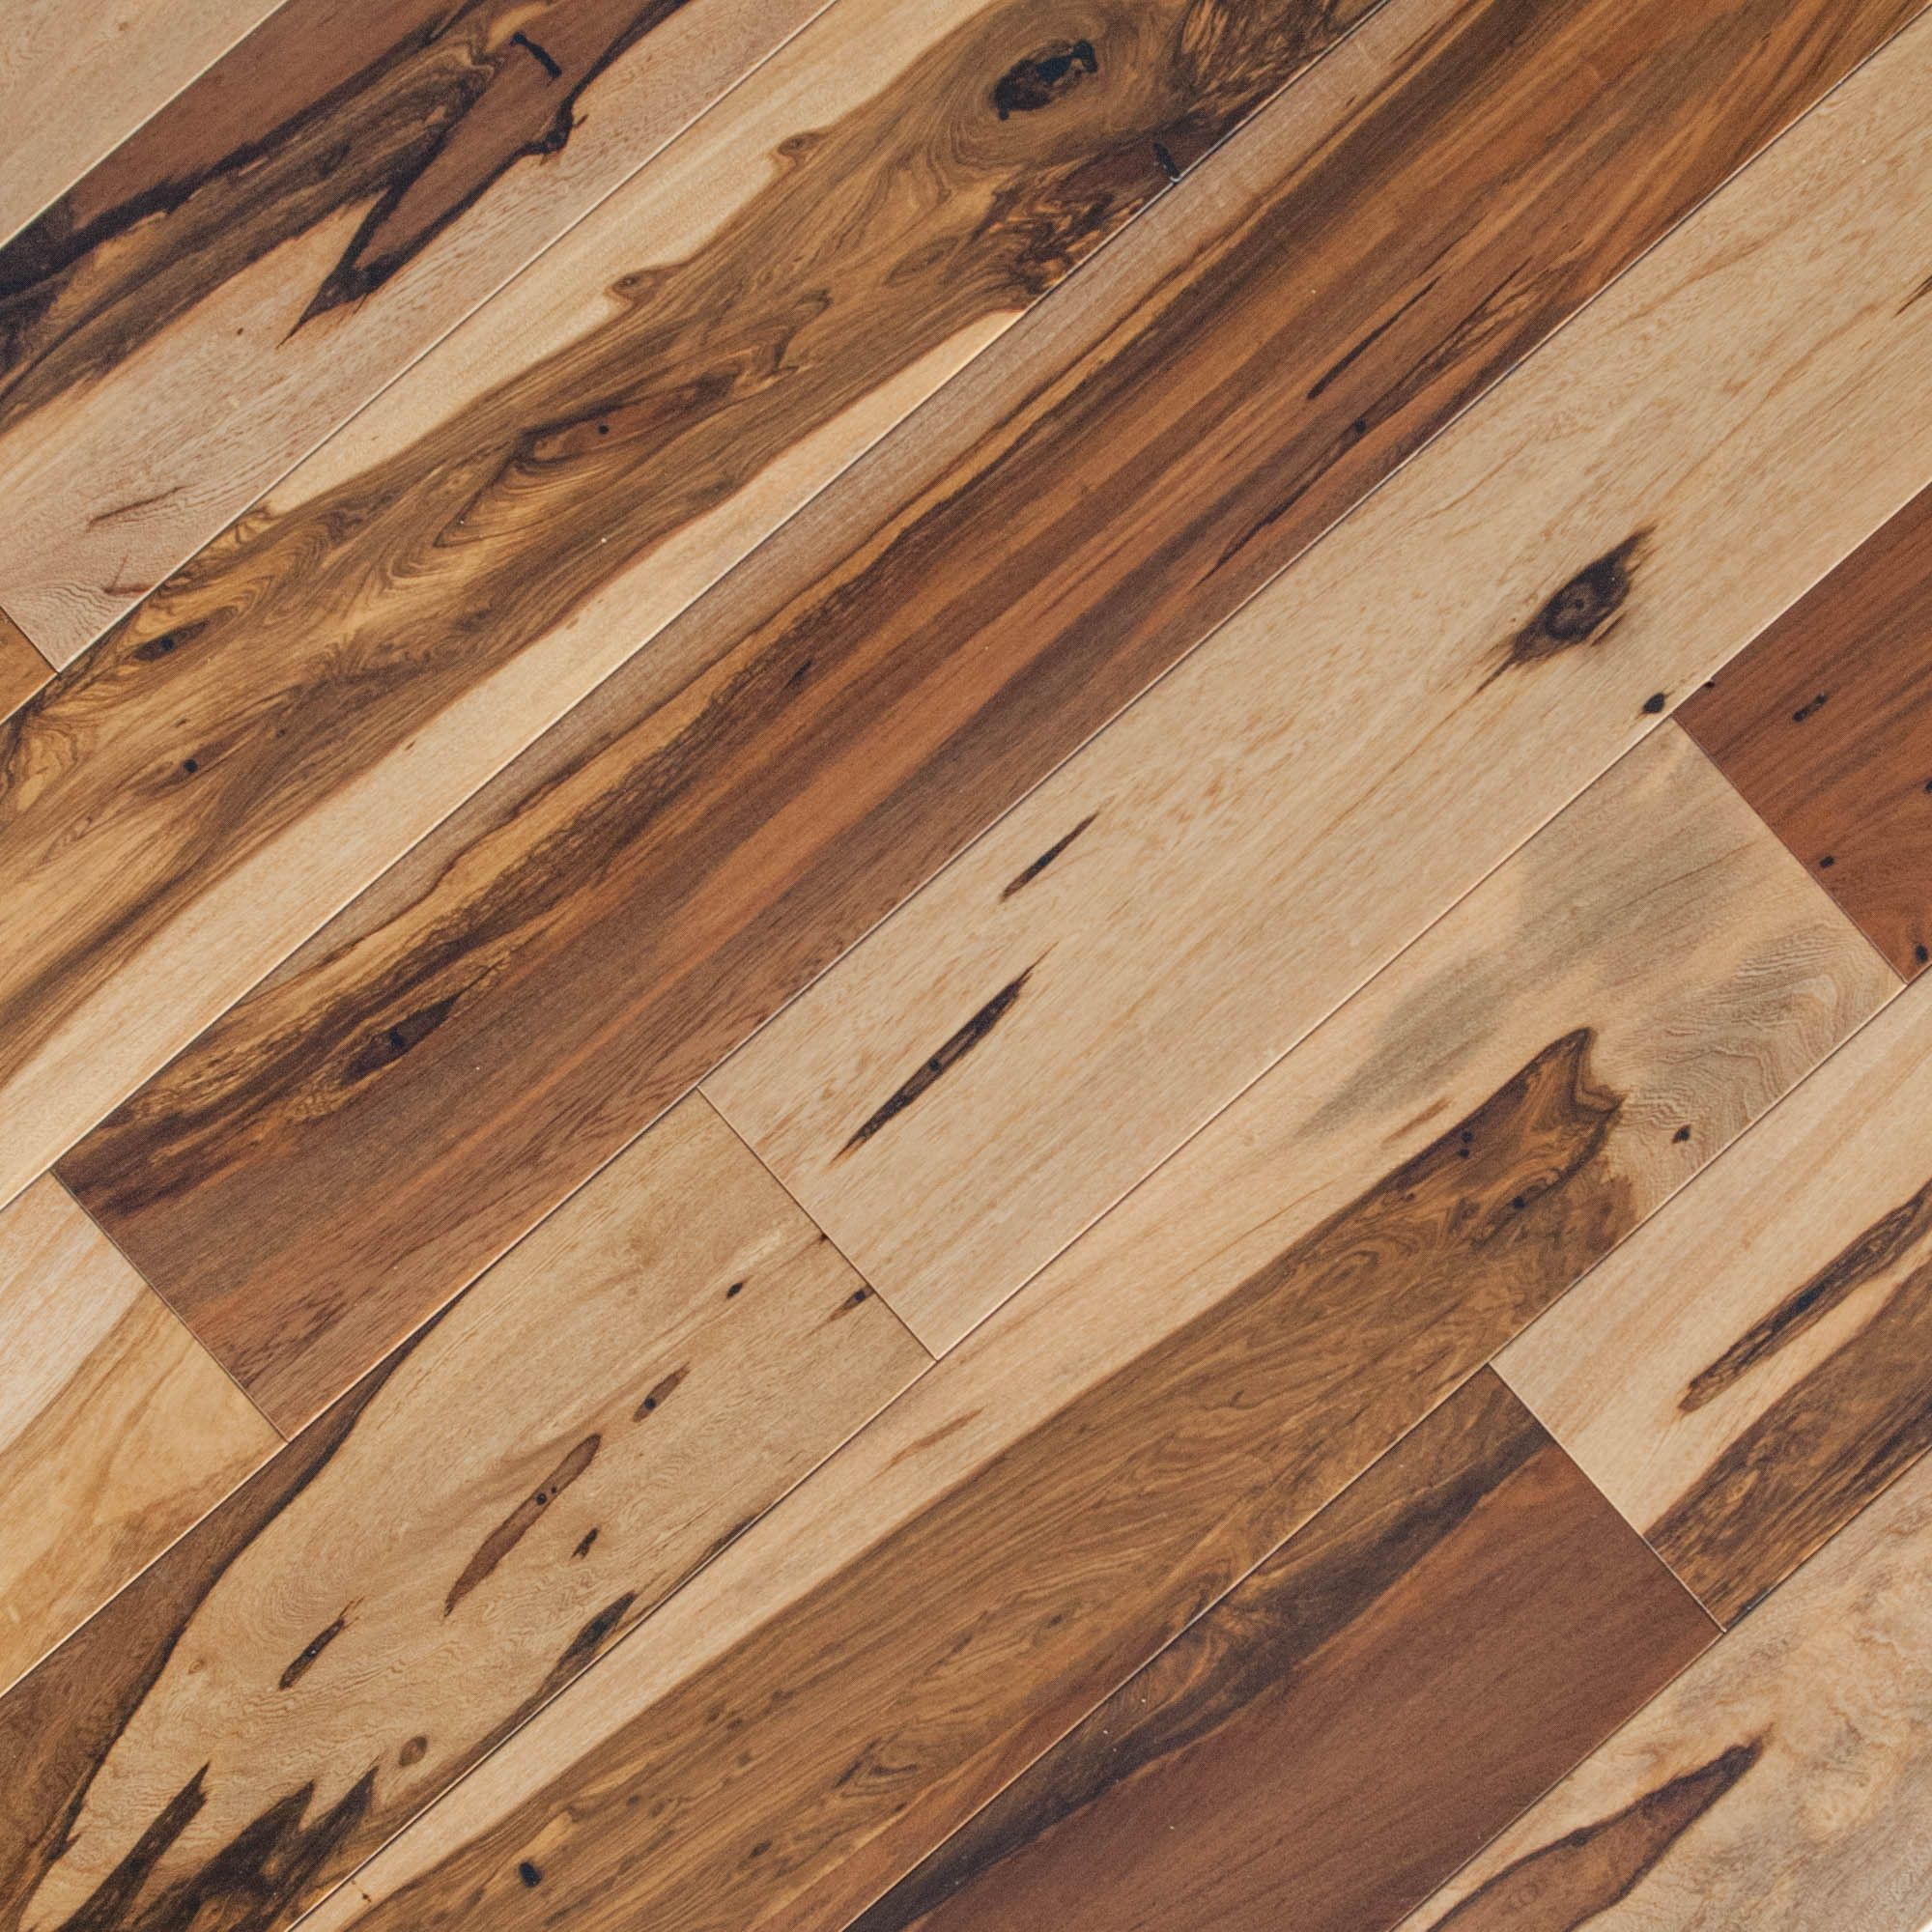 Brazilian Pecan Flooring Hardwood Floors Wood Floors